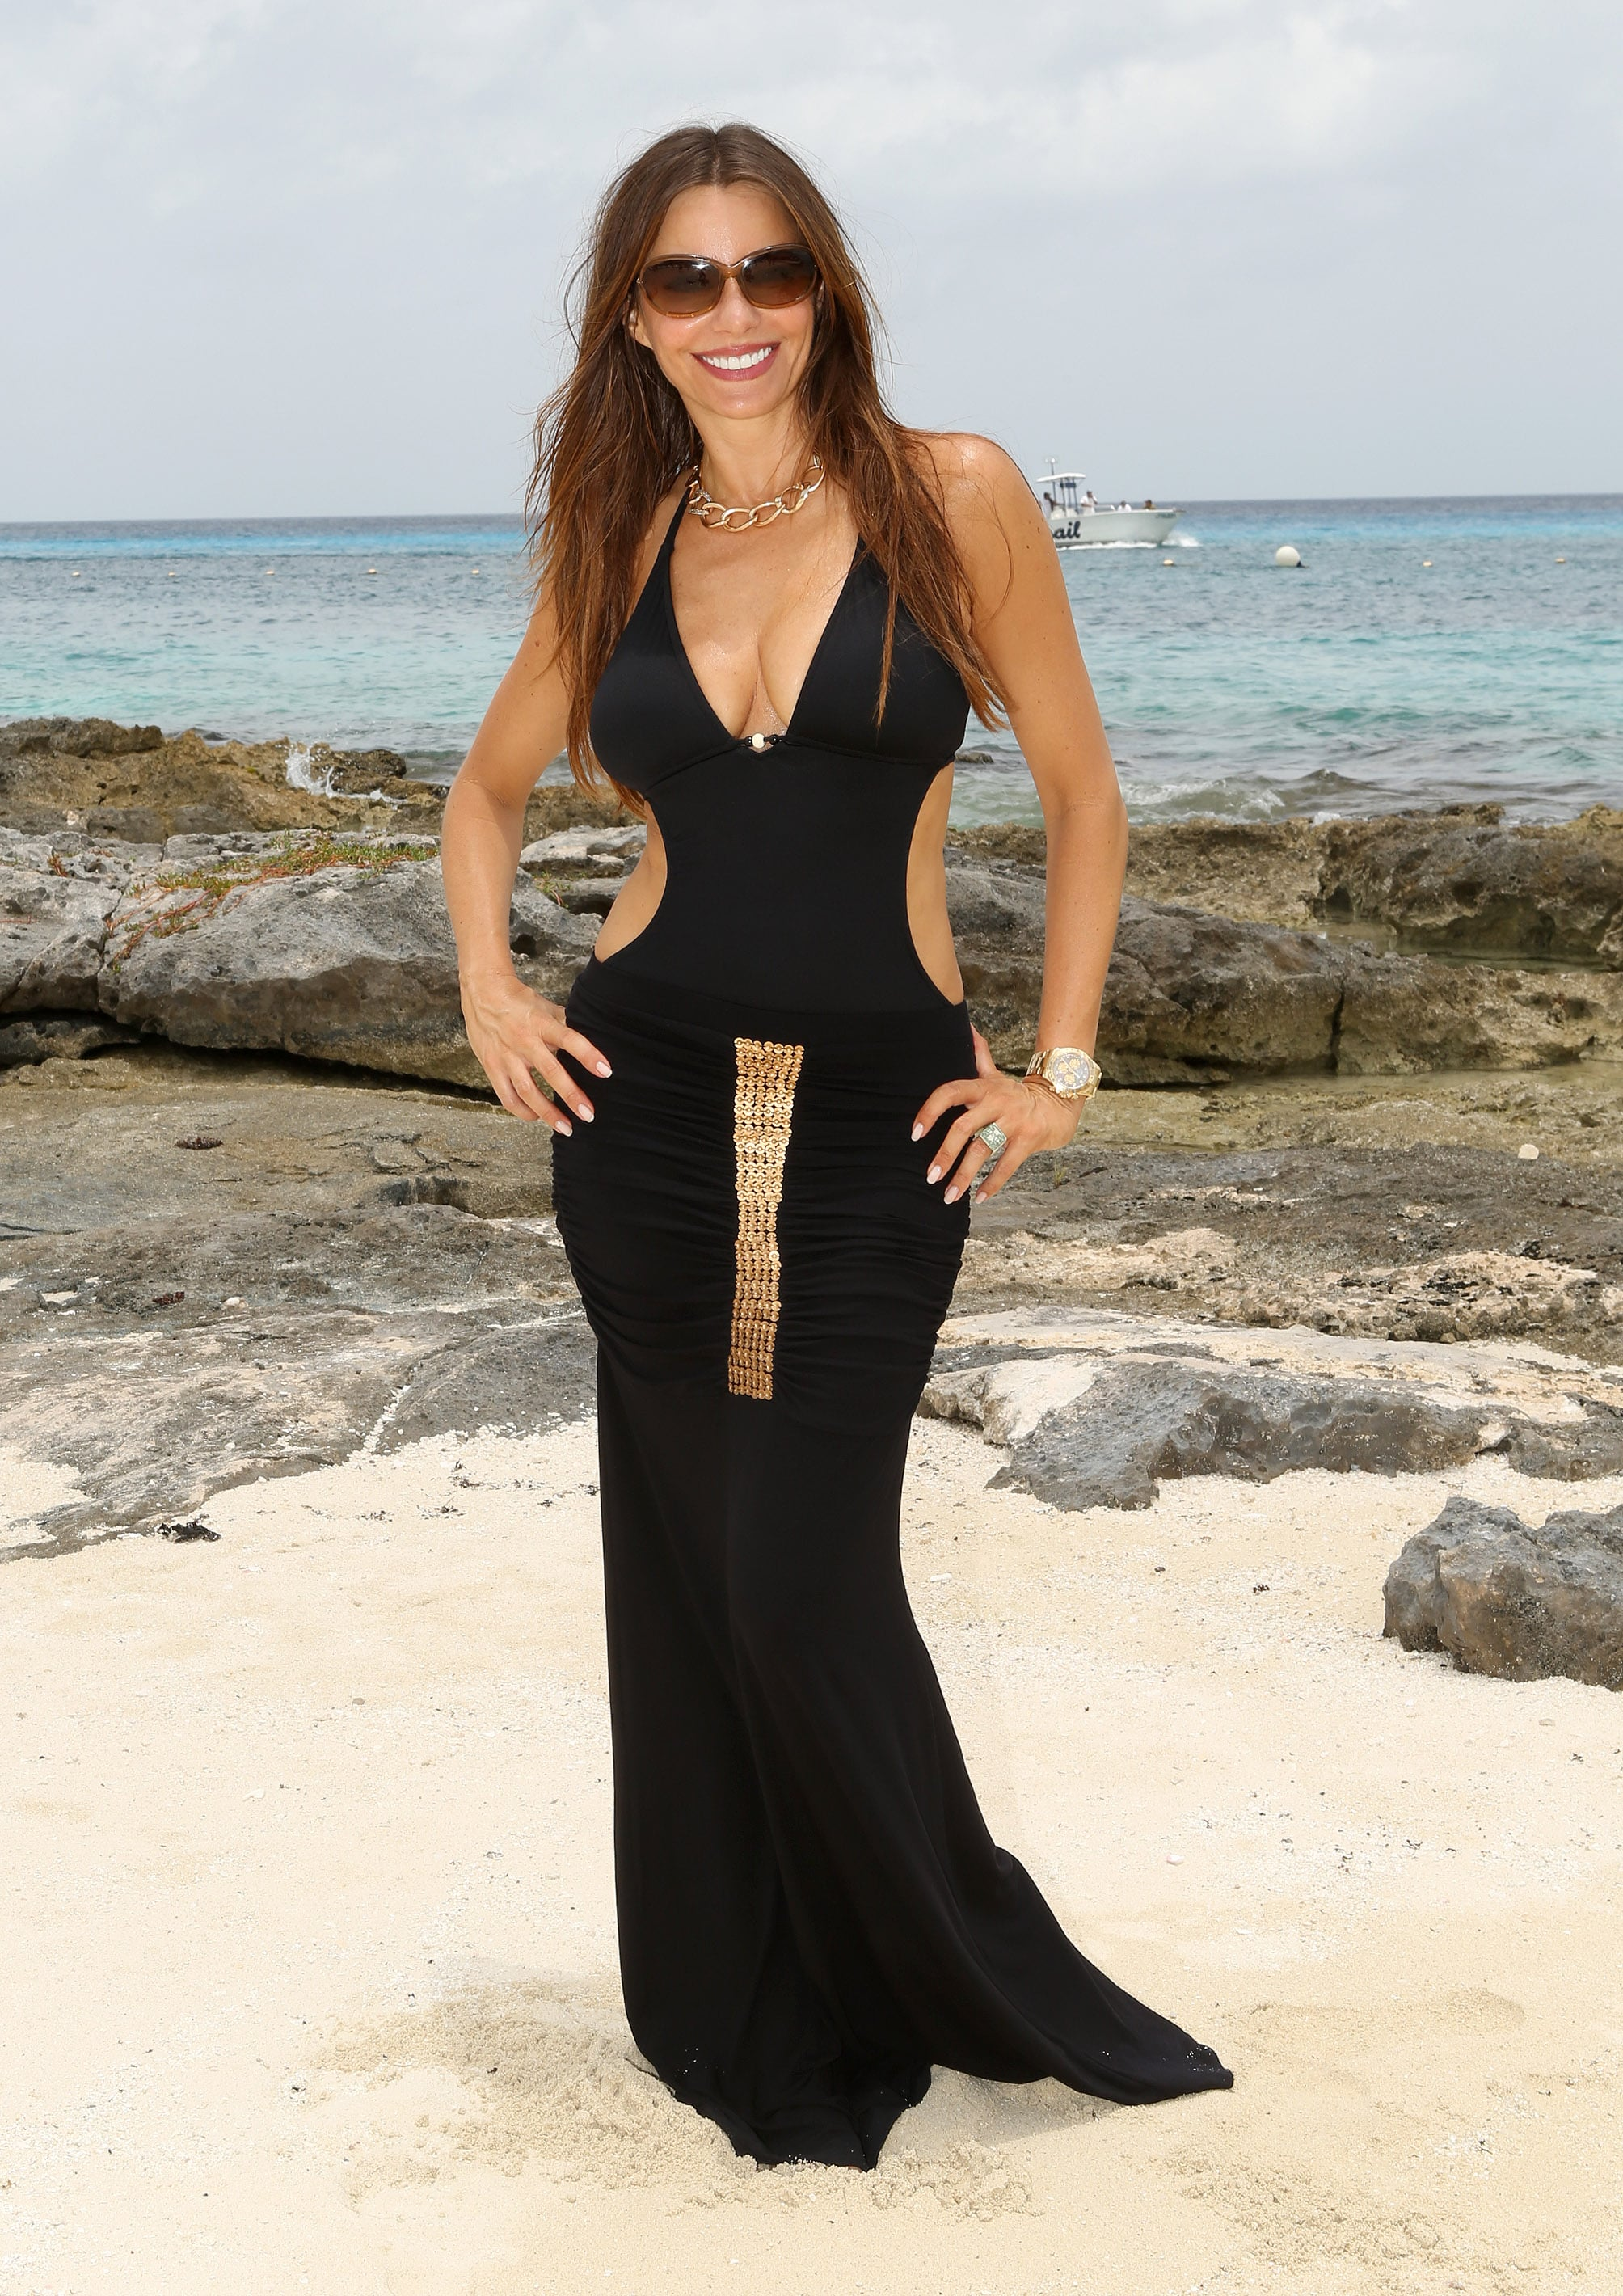 We couldn't have a sexiest moments list without including this aye mamí moment from Sofia's 40th birthday in Cozumel, Mexico. Donning a cutout monokini and embellished maxi skirt, Vergara proved you can be both swim-ready and sexy.